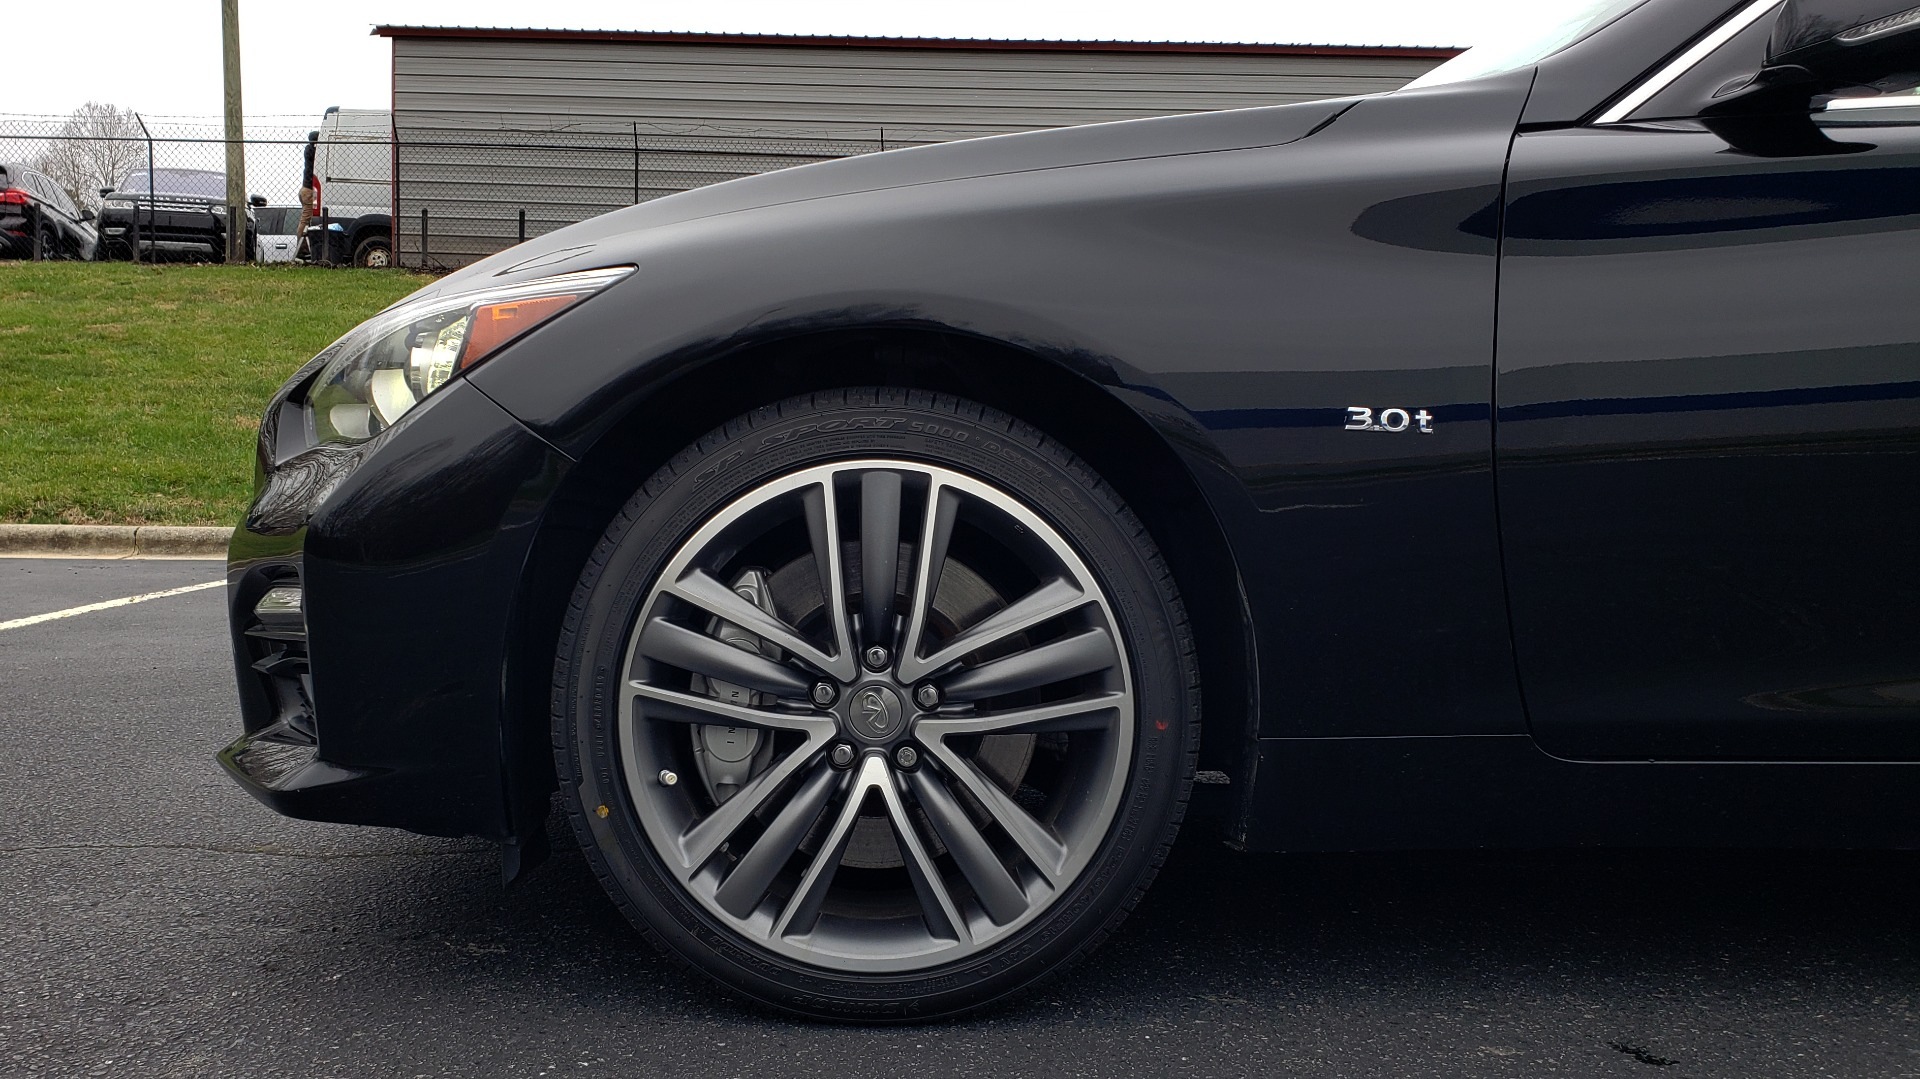 Used 2016 INFINITI Q50 3.0t PREMIUM SPORT AWD / NAV / SUNROOF / HTD STS / REARVIEW for sale Sold at Formula Imports in Charlotte NC 28227 79